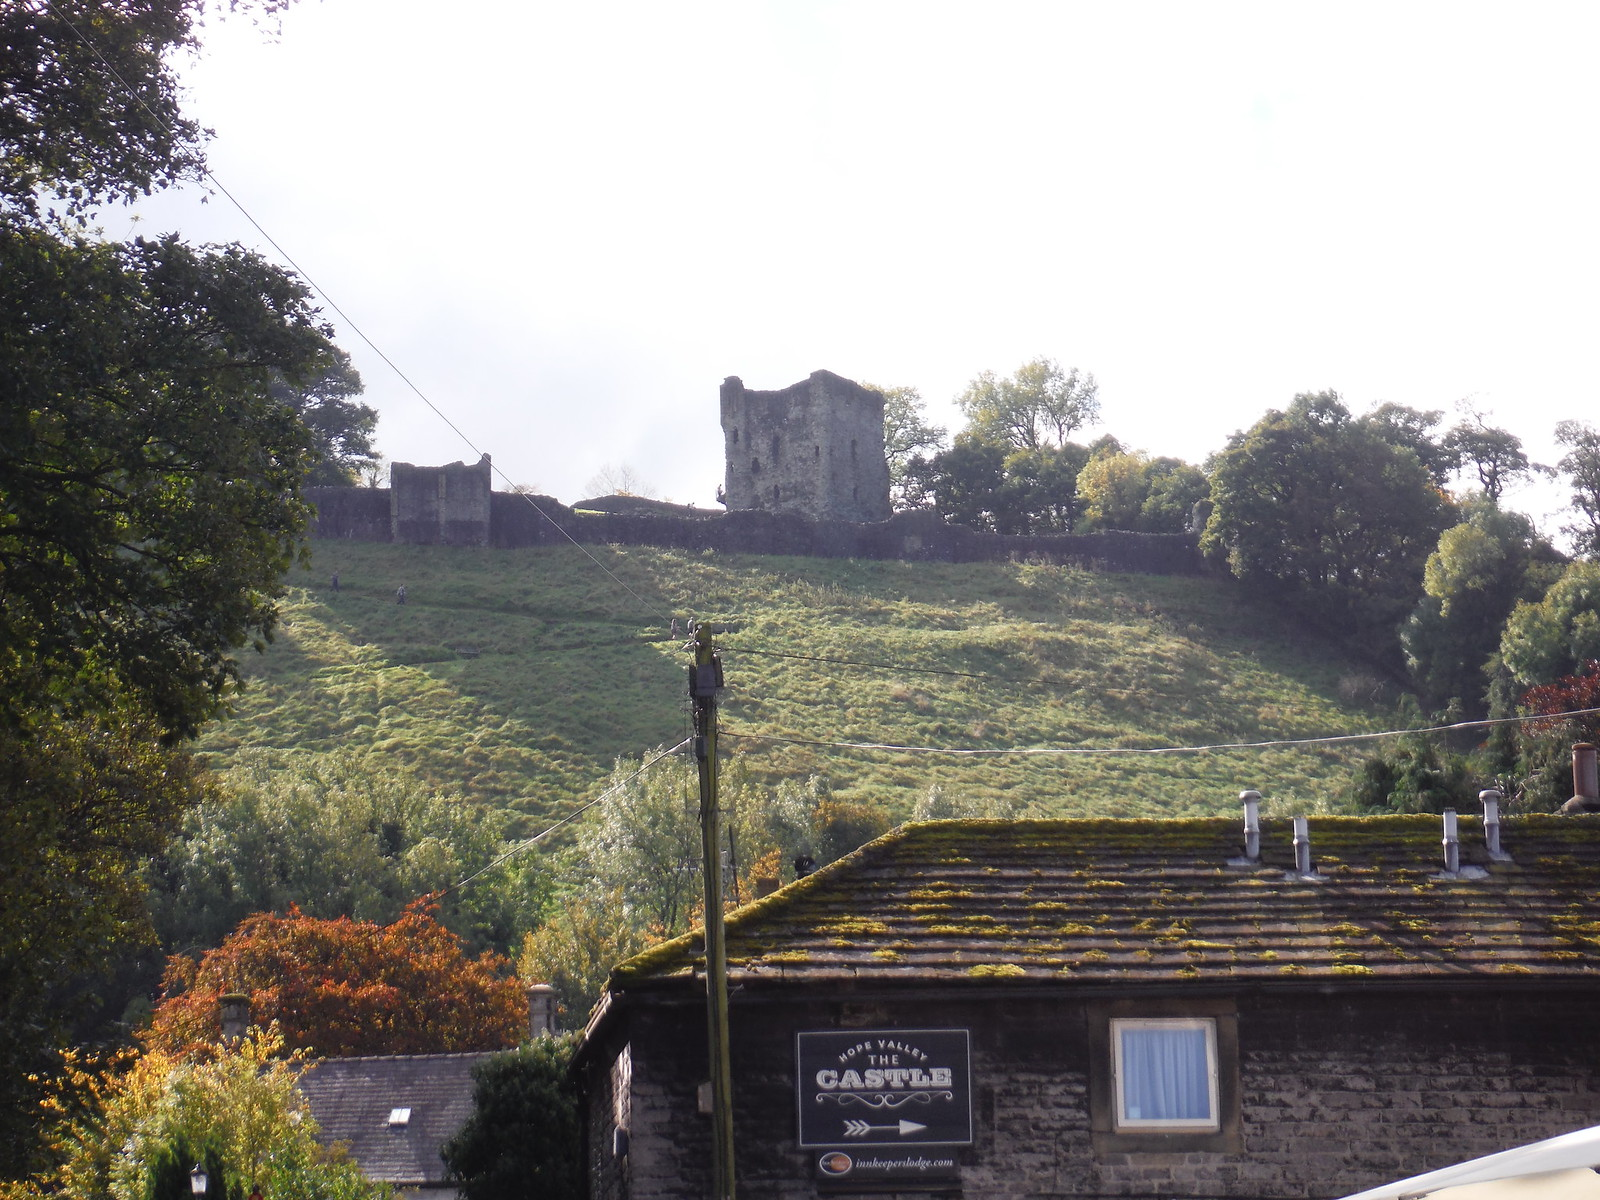 Peveril Castle, Castleton SWC Walk 302 - Bamford to Edale (via Win Hill and Great Ridge) [Castleton Alternatives]